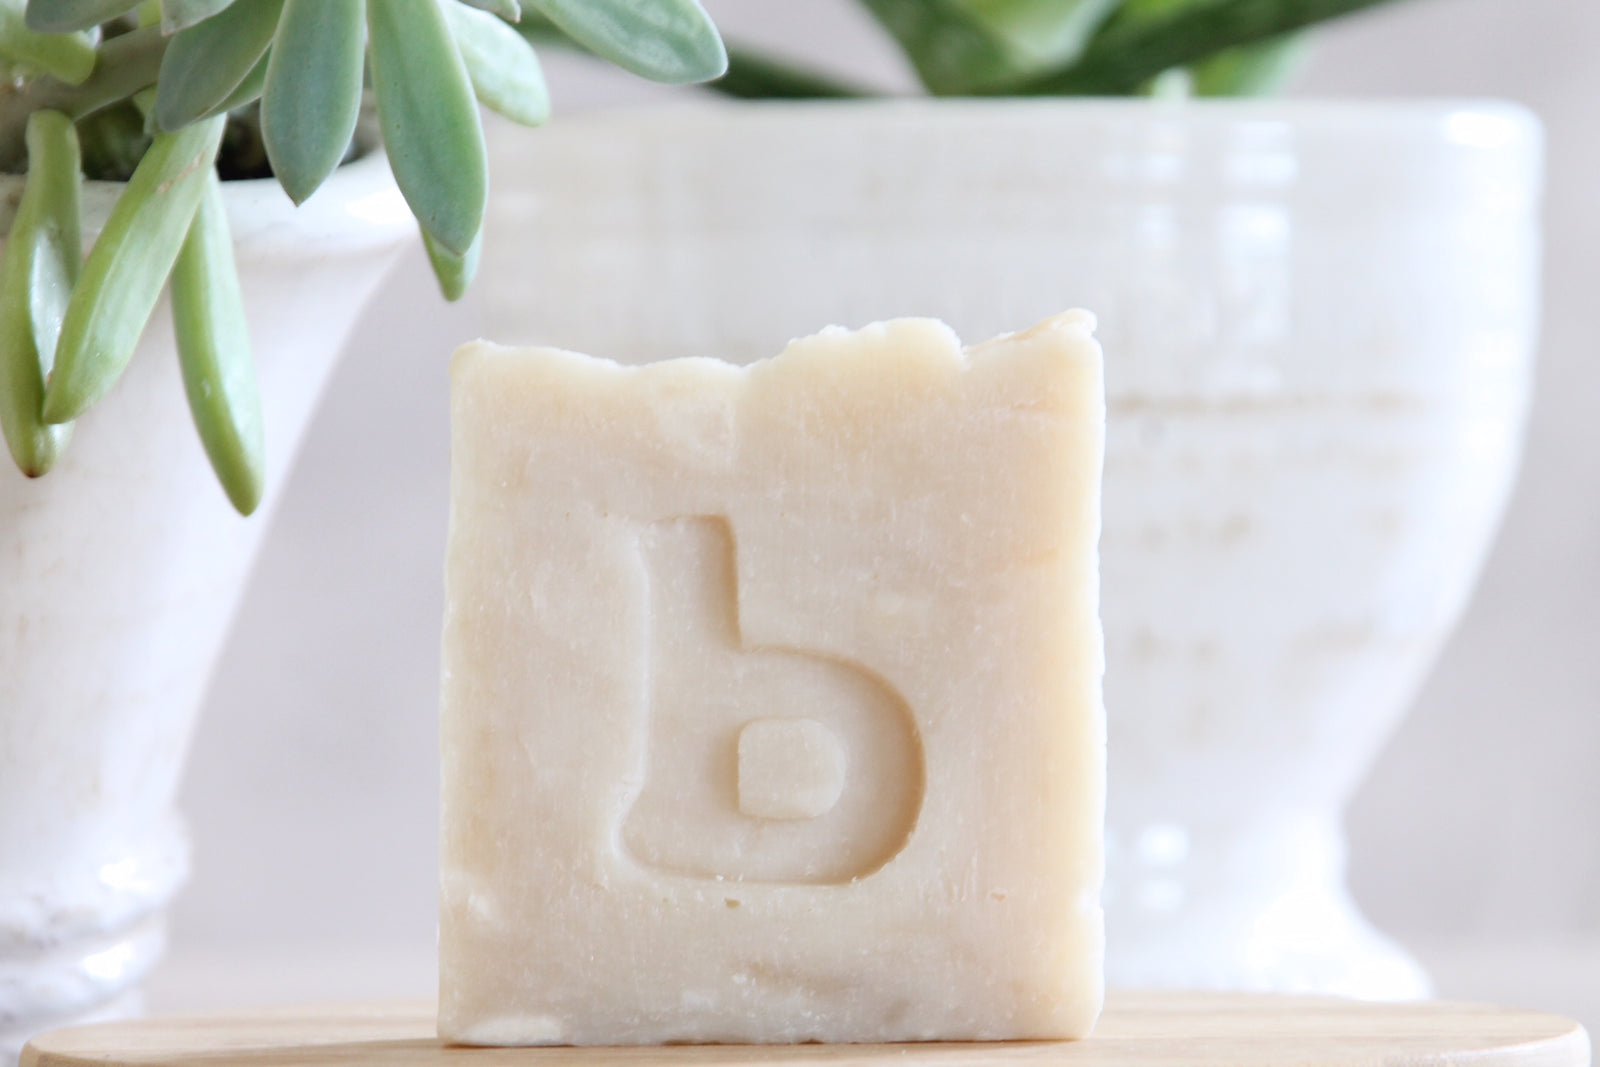 Bare - Unscented Bar Soap